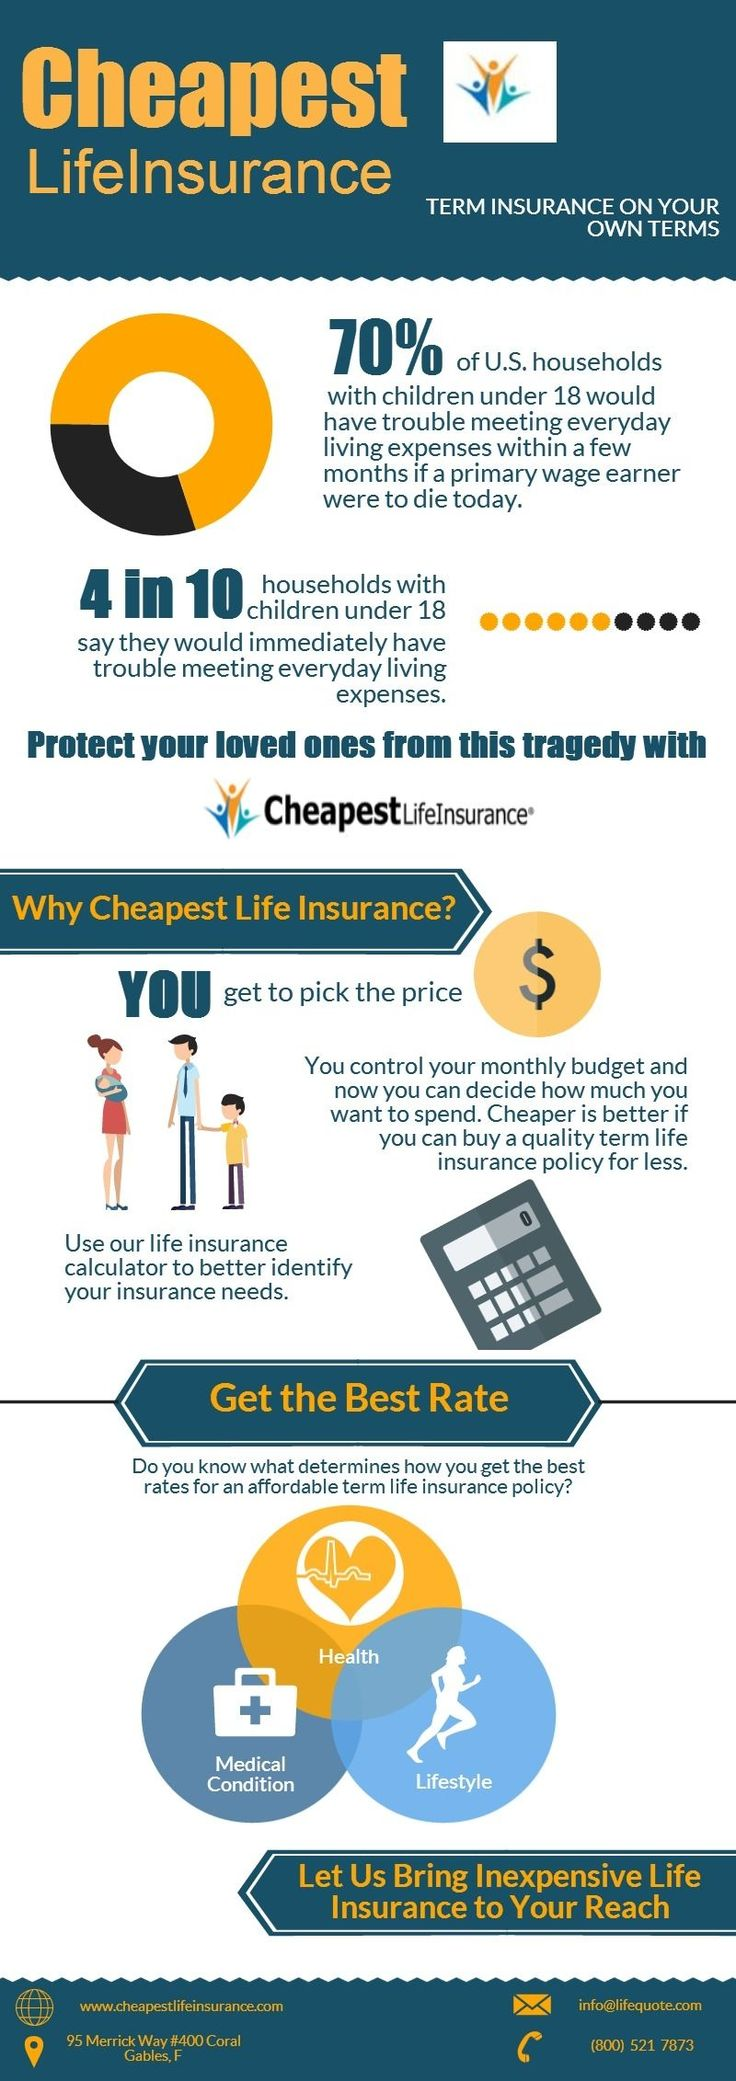 Universal Life Insurance Quotes Online 100  Universal Life Insurance Quote Comparison   100 Best